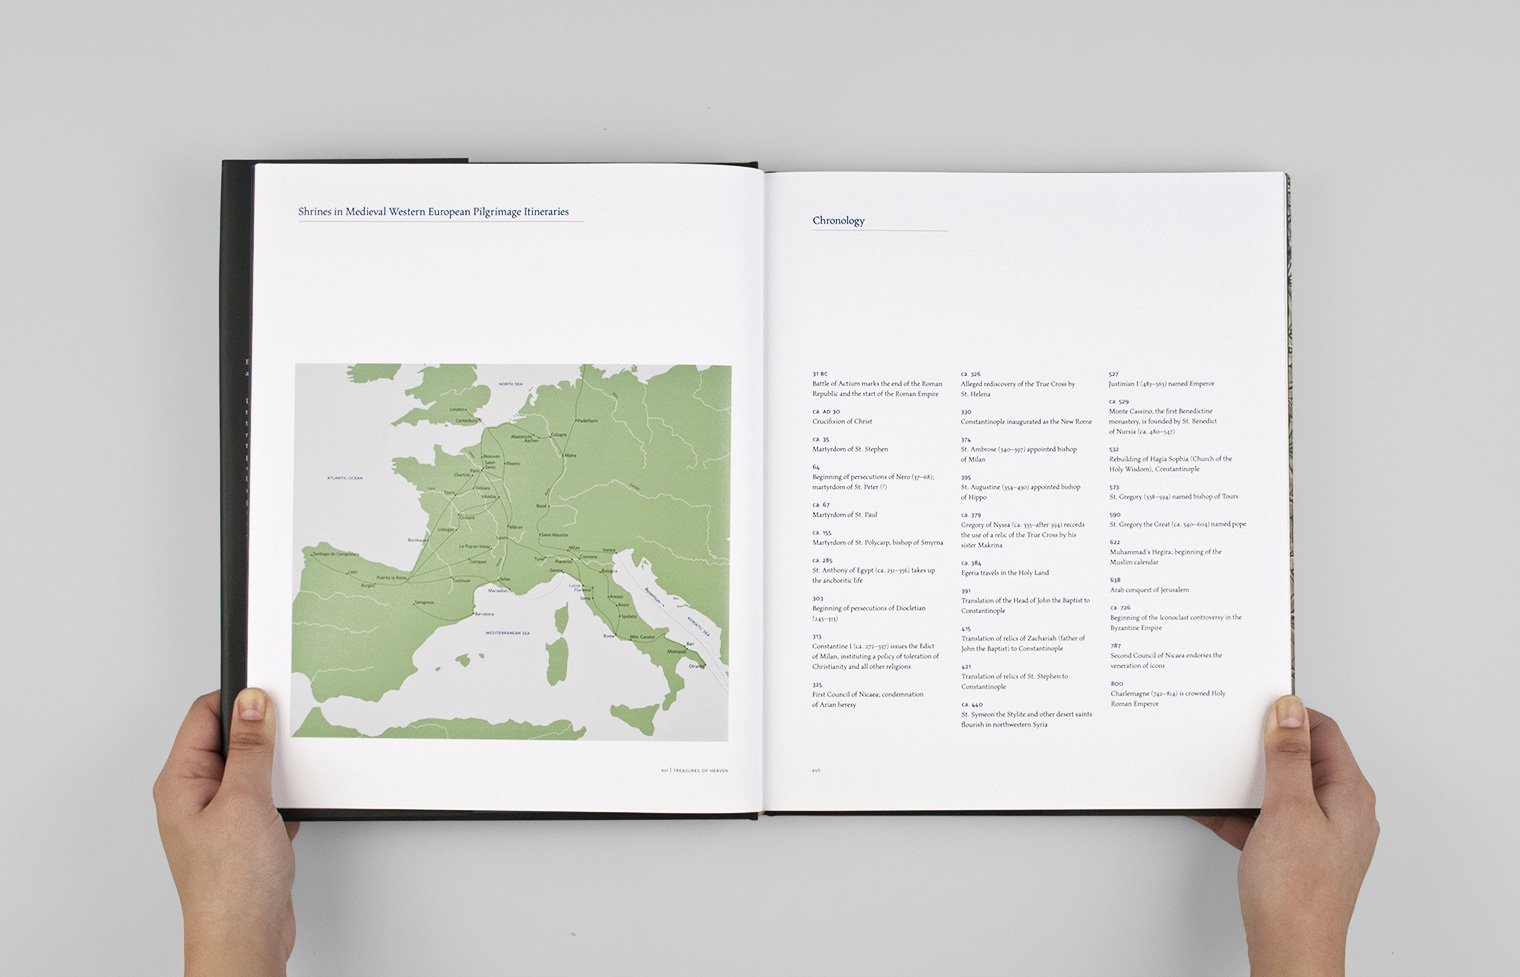 Pilgrimage routes are marked on a map designed by Studio A. It faces a chronology of important events.